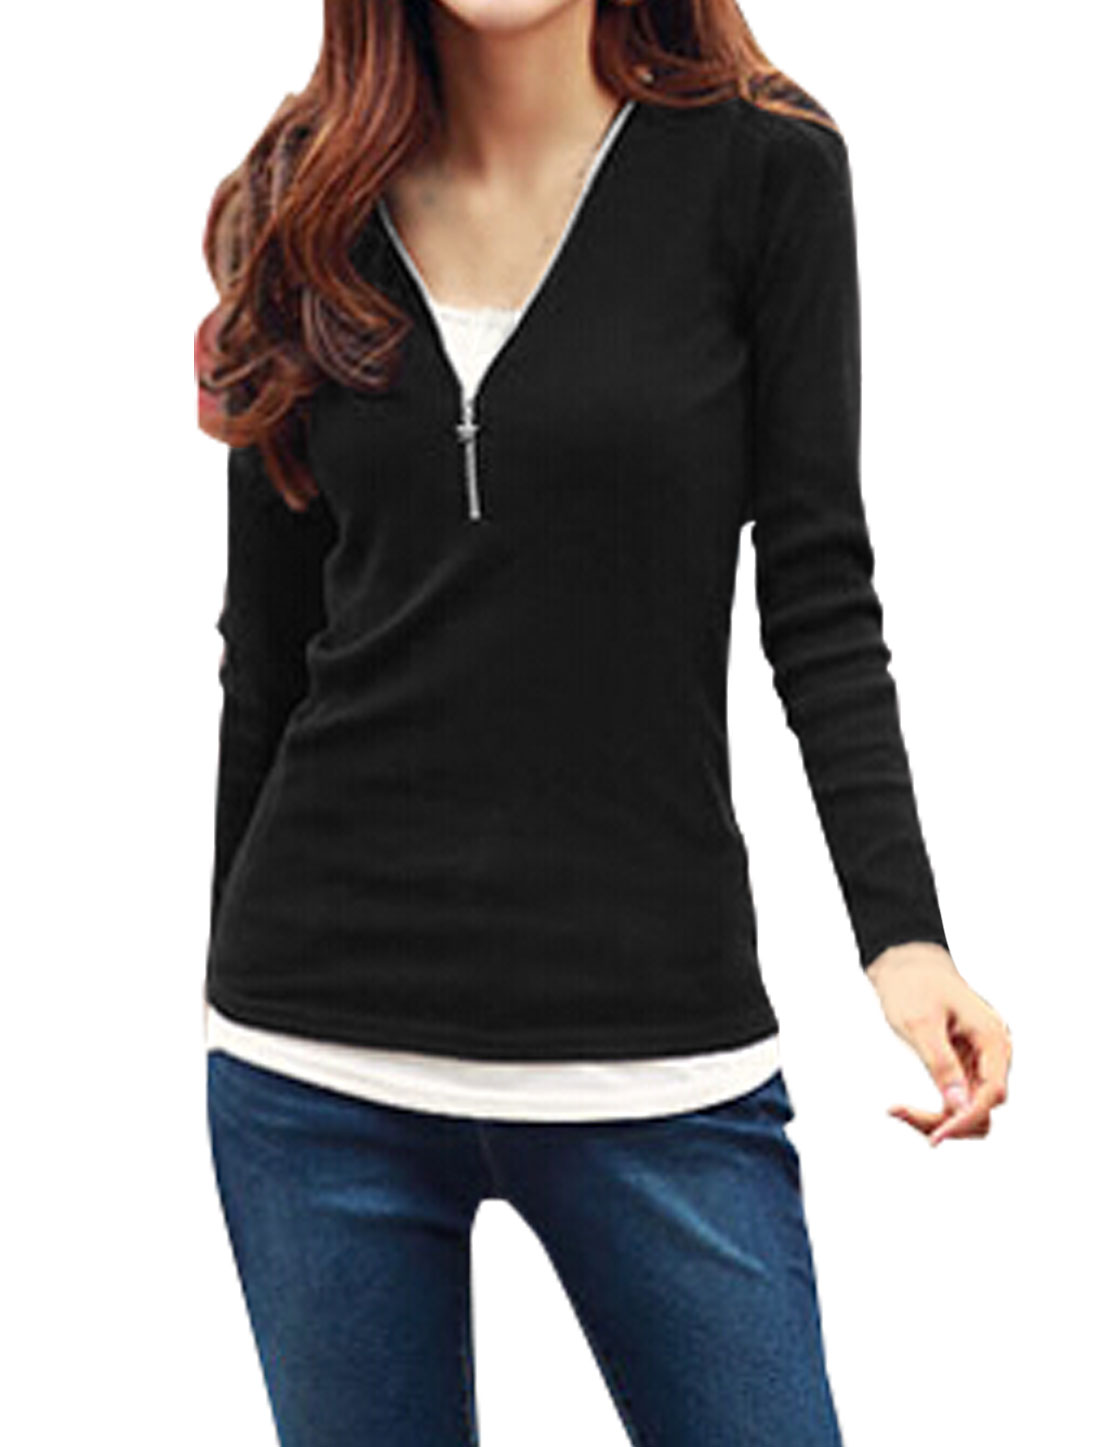 Women Long Sleeves Half Placket Slim Fit Top Black XS